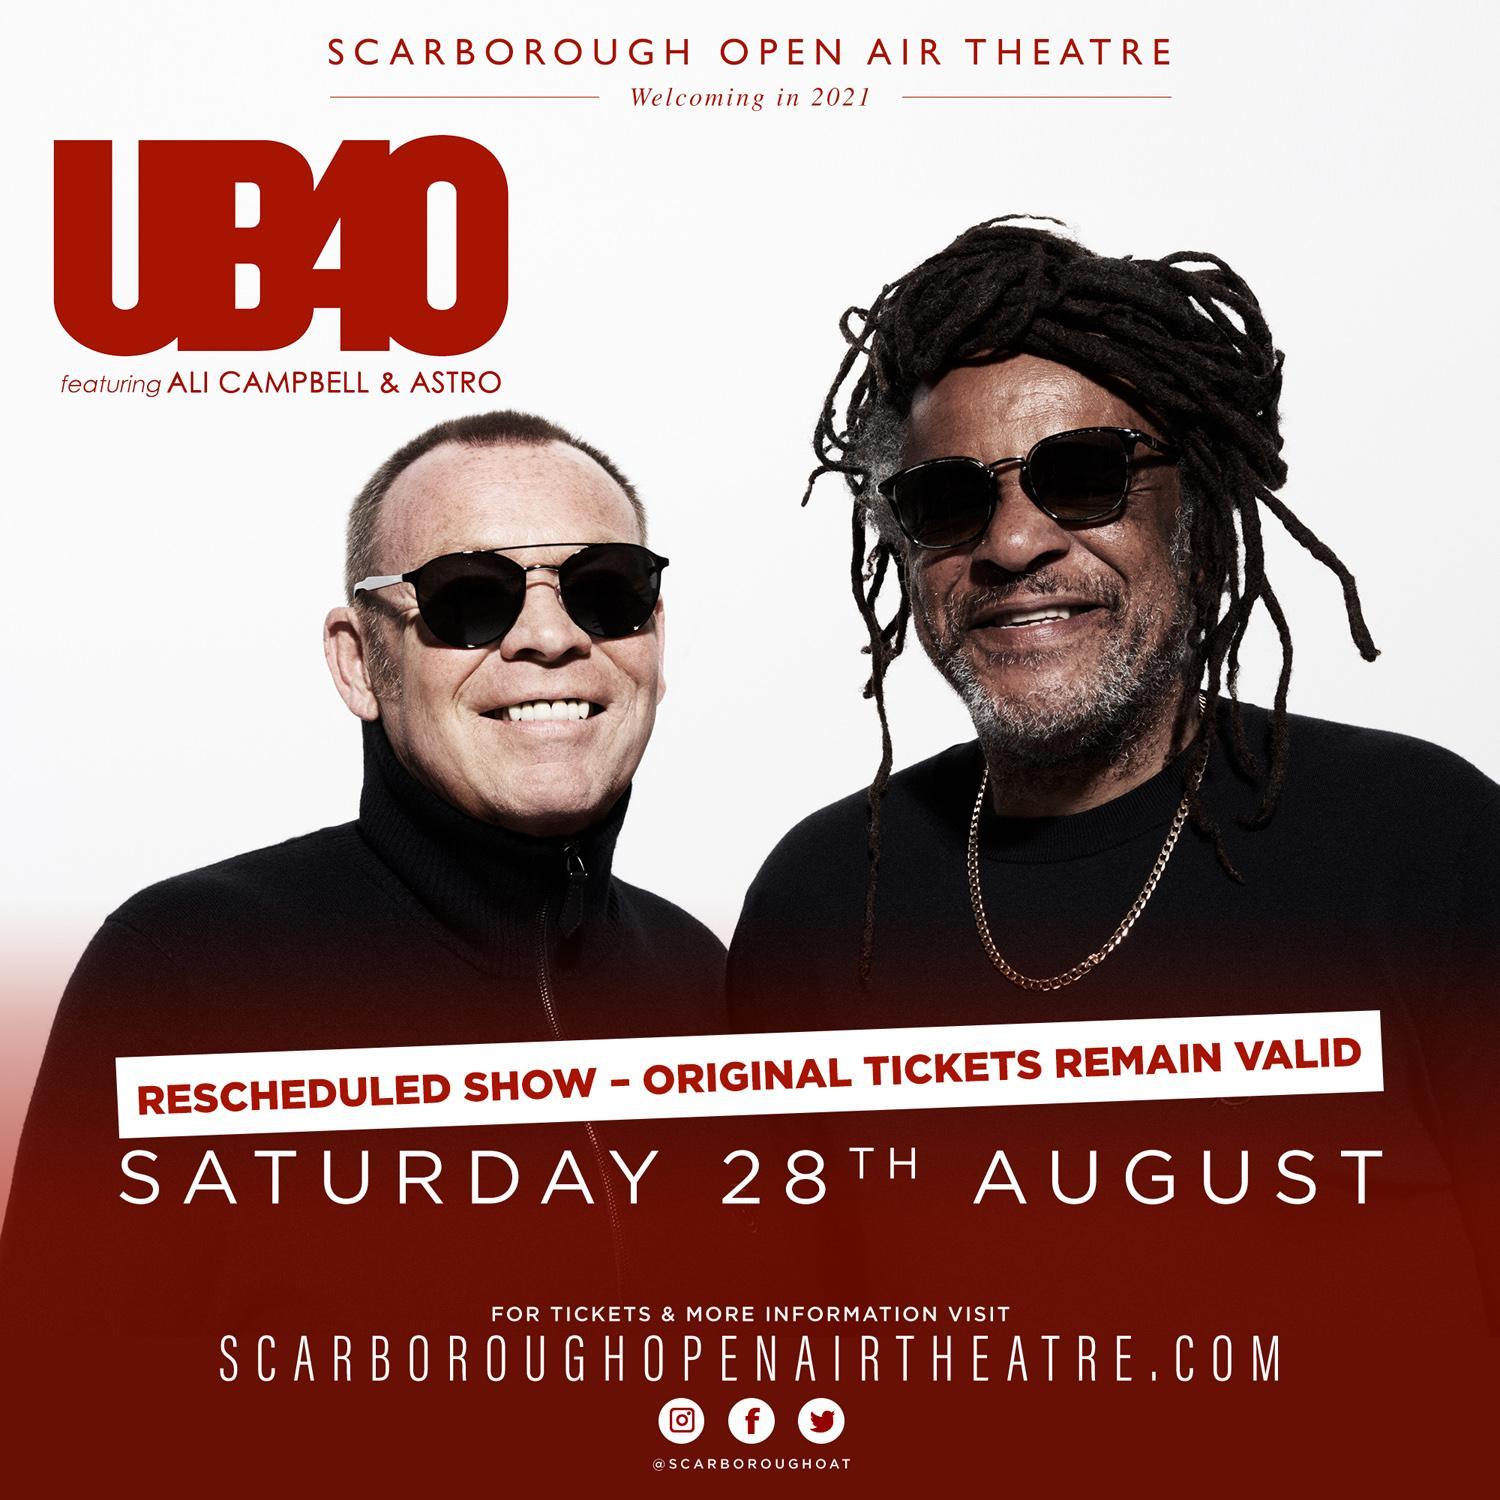 Promotional image for UB40 featuring Ali Campbell and Astro